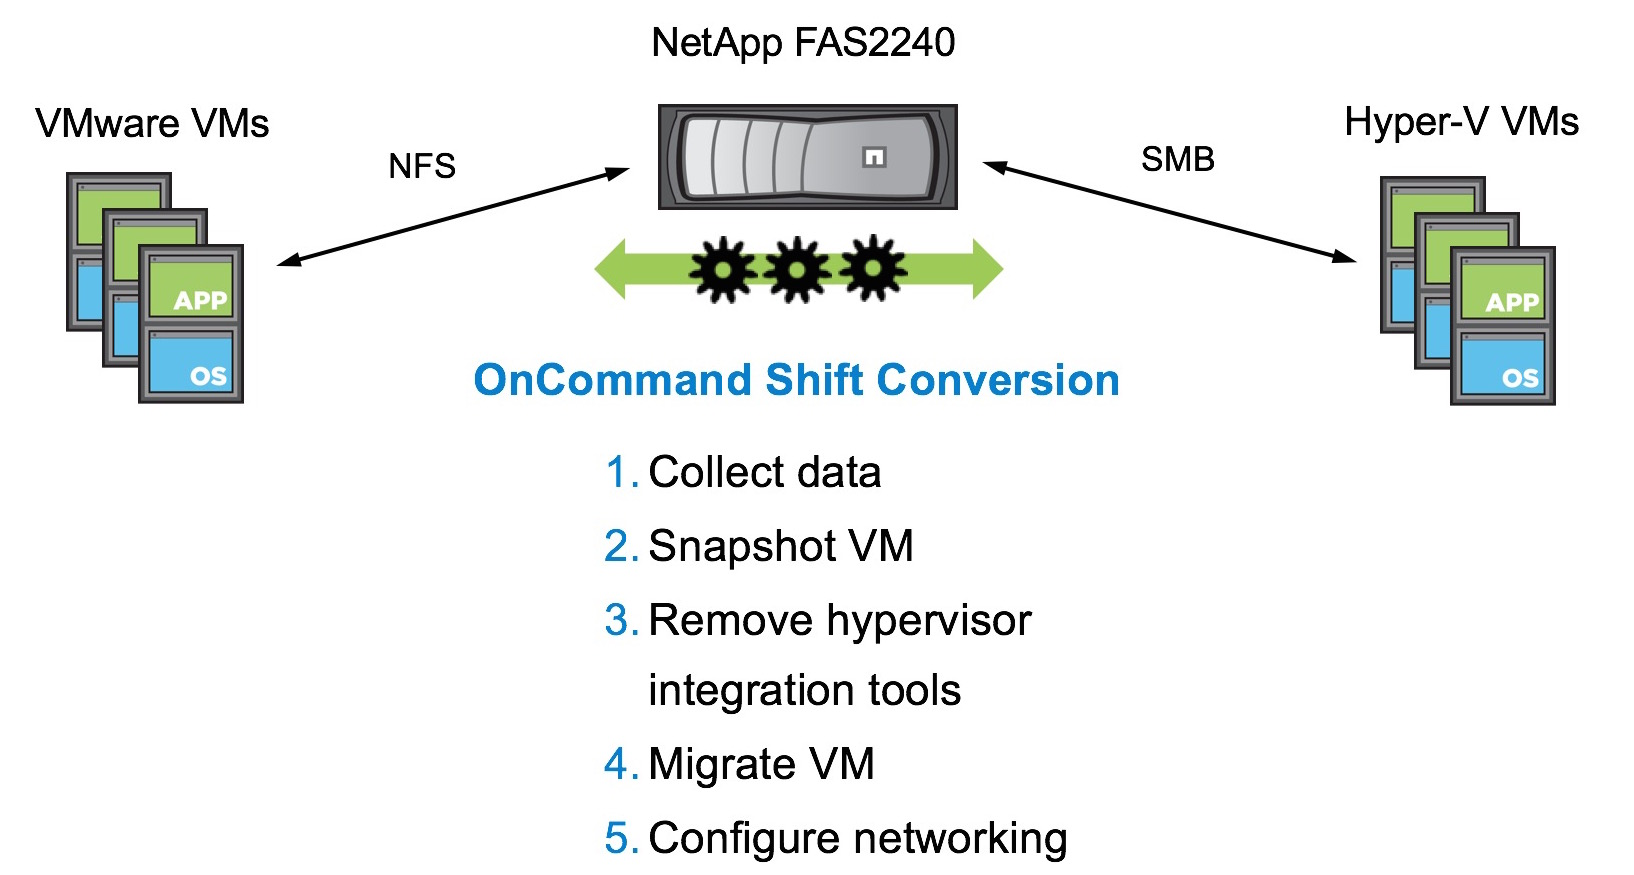 NetApp releases OnCommand Shift for seamless migration